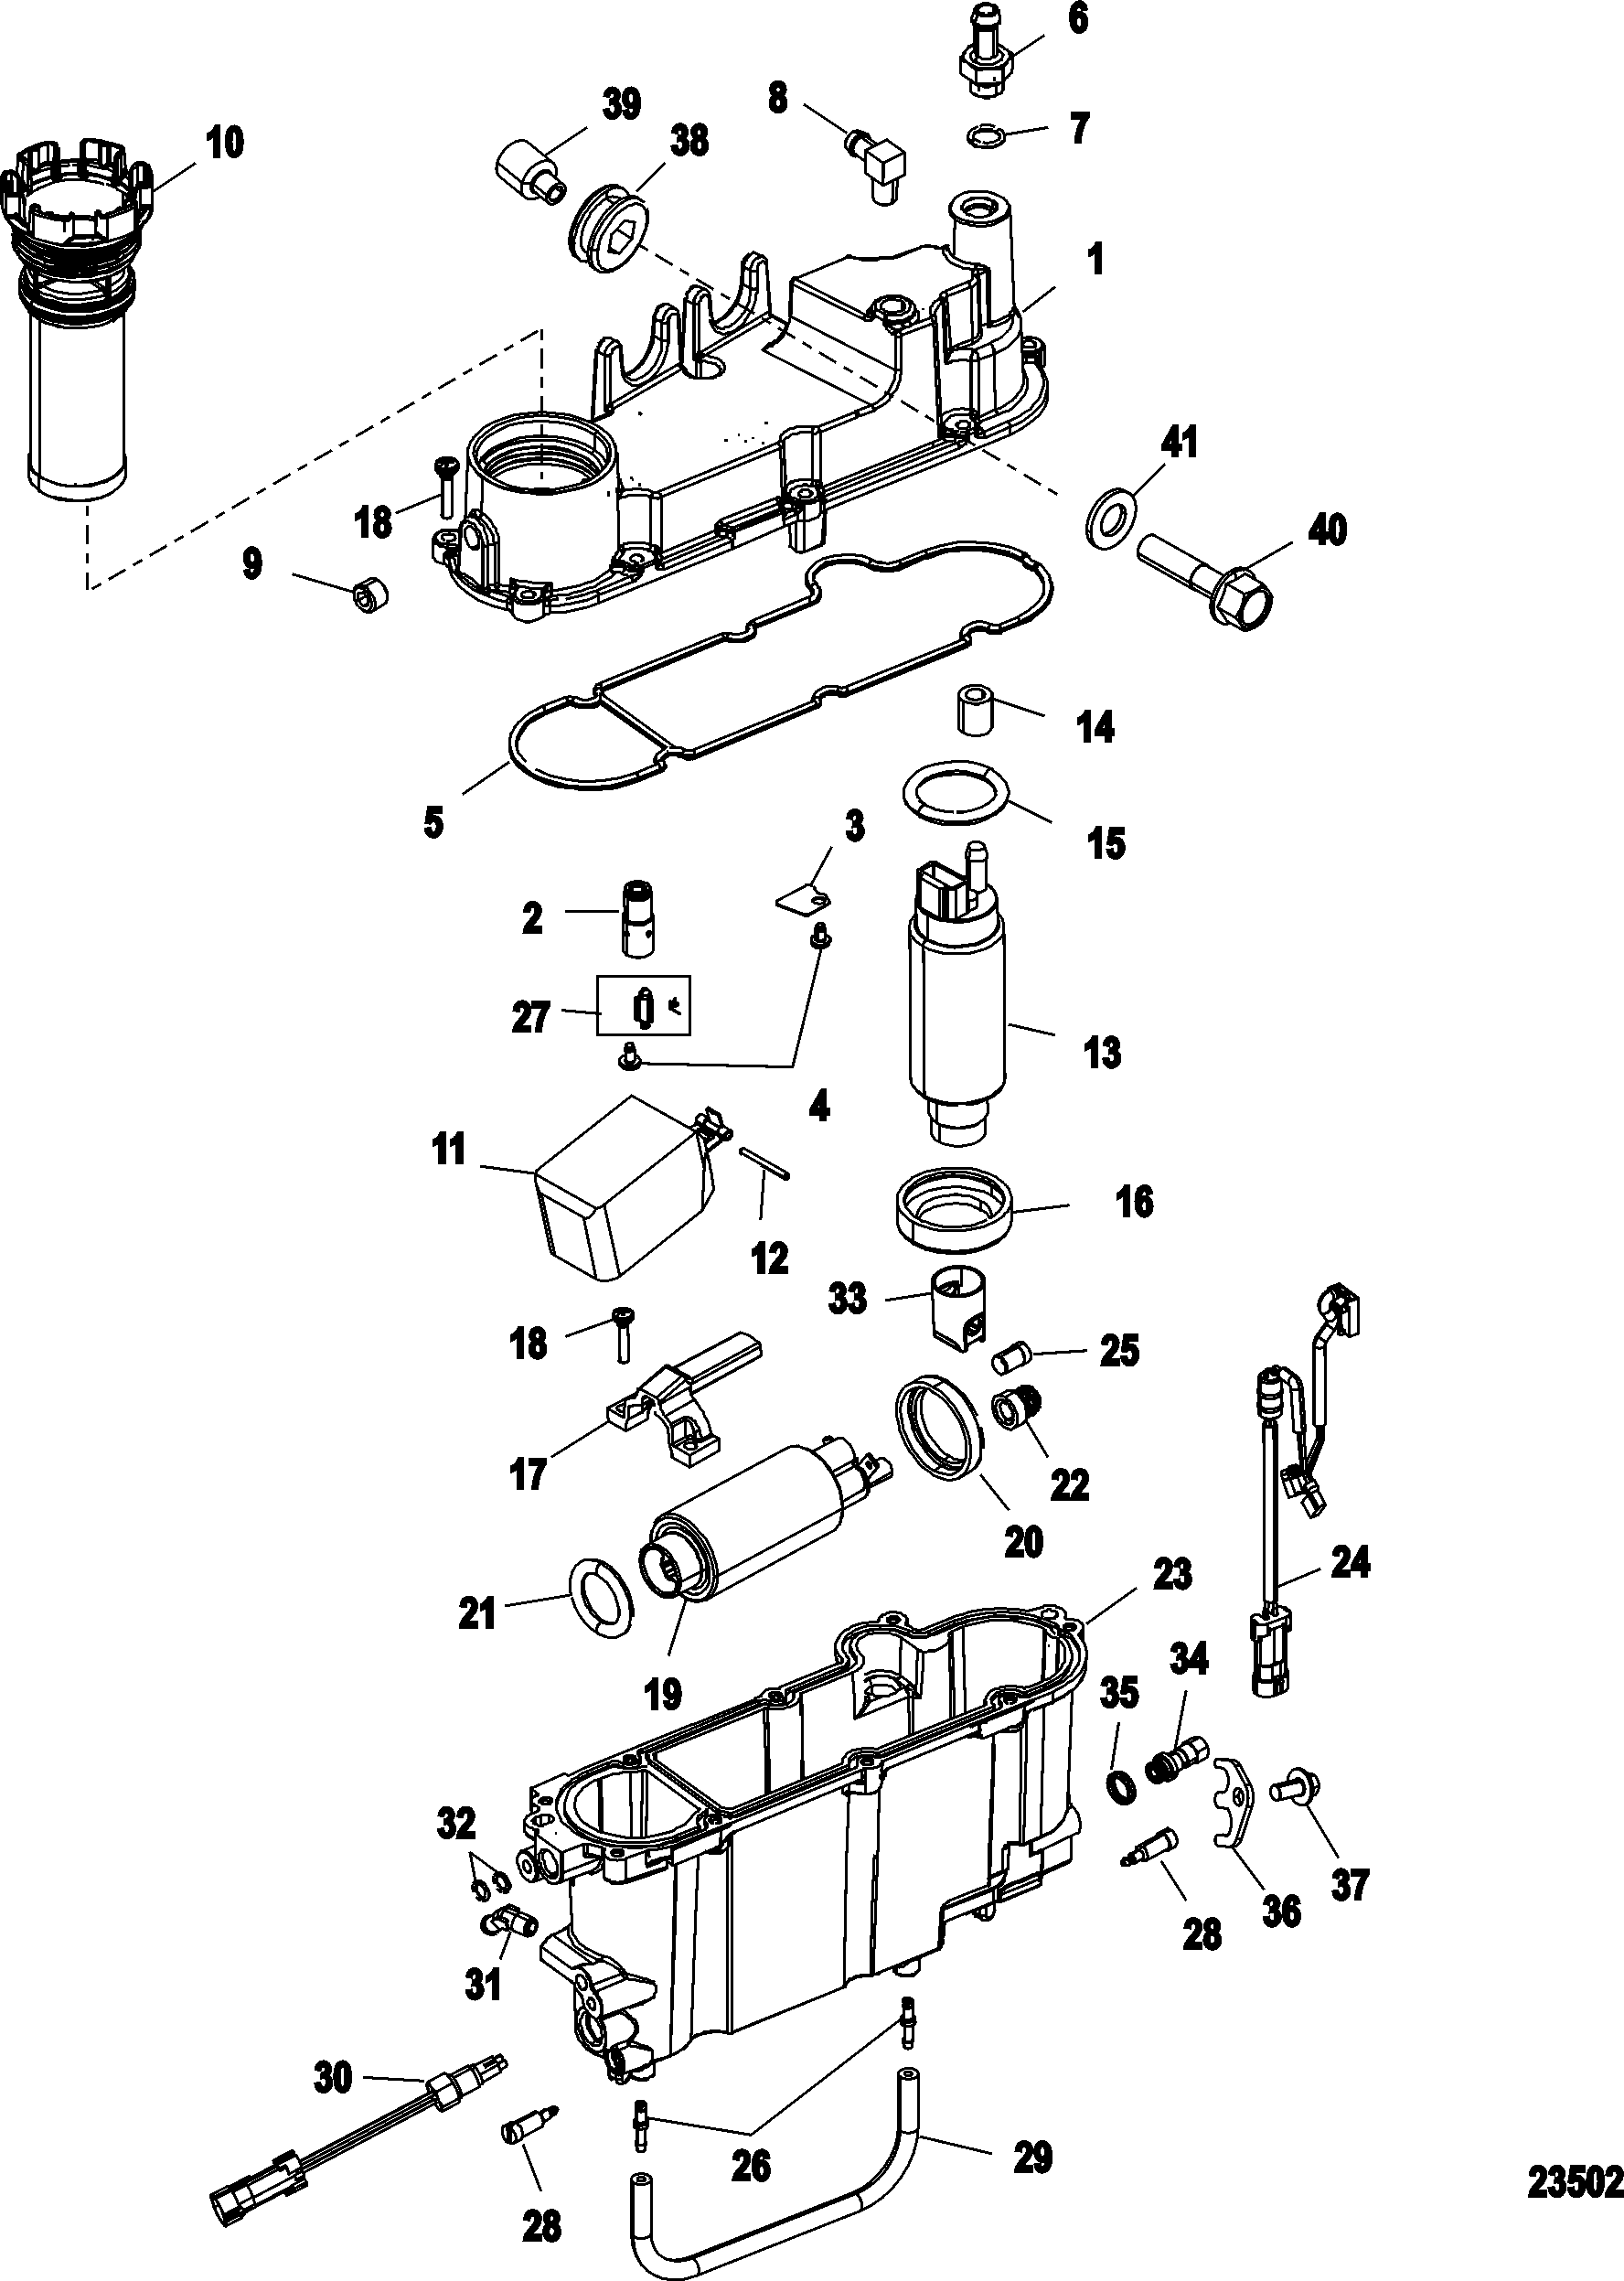 ... 23502 vapor separator components for mercury 200 optimax v6 dfi mercury optimax  wiring diagram at highcare